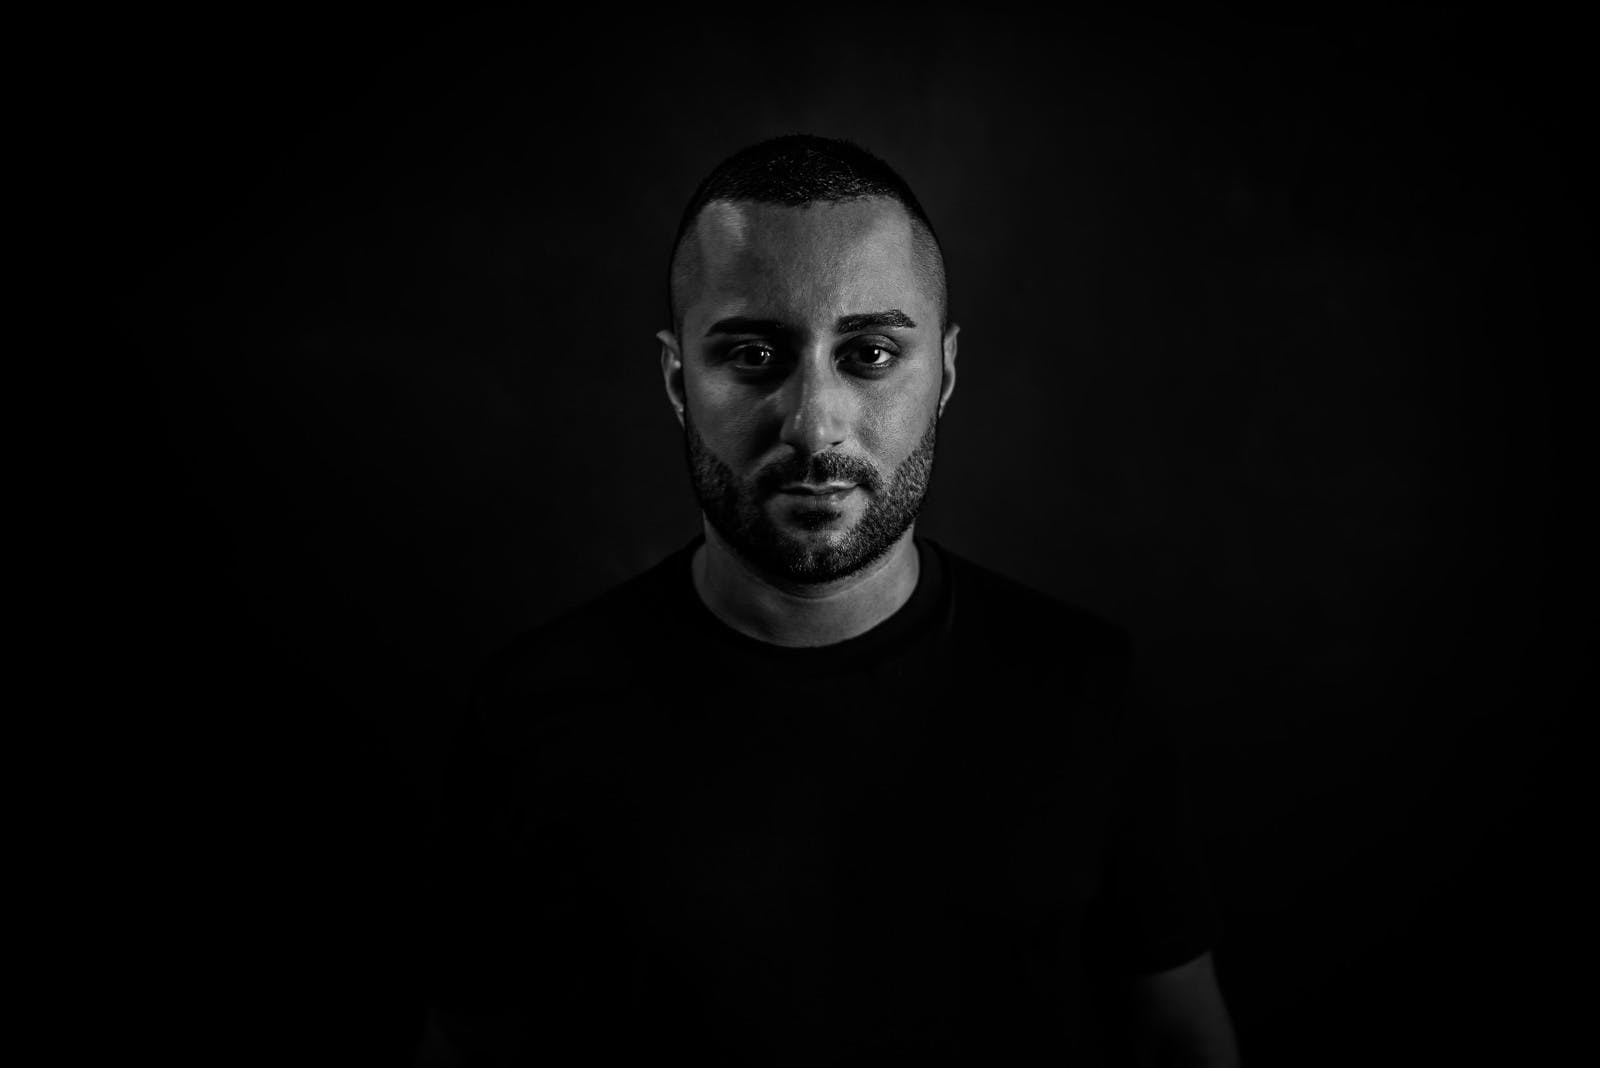 joseph-capriati-shares-health-news